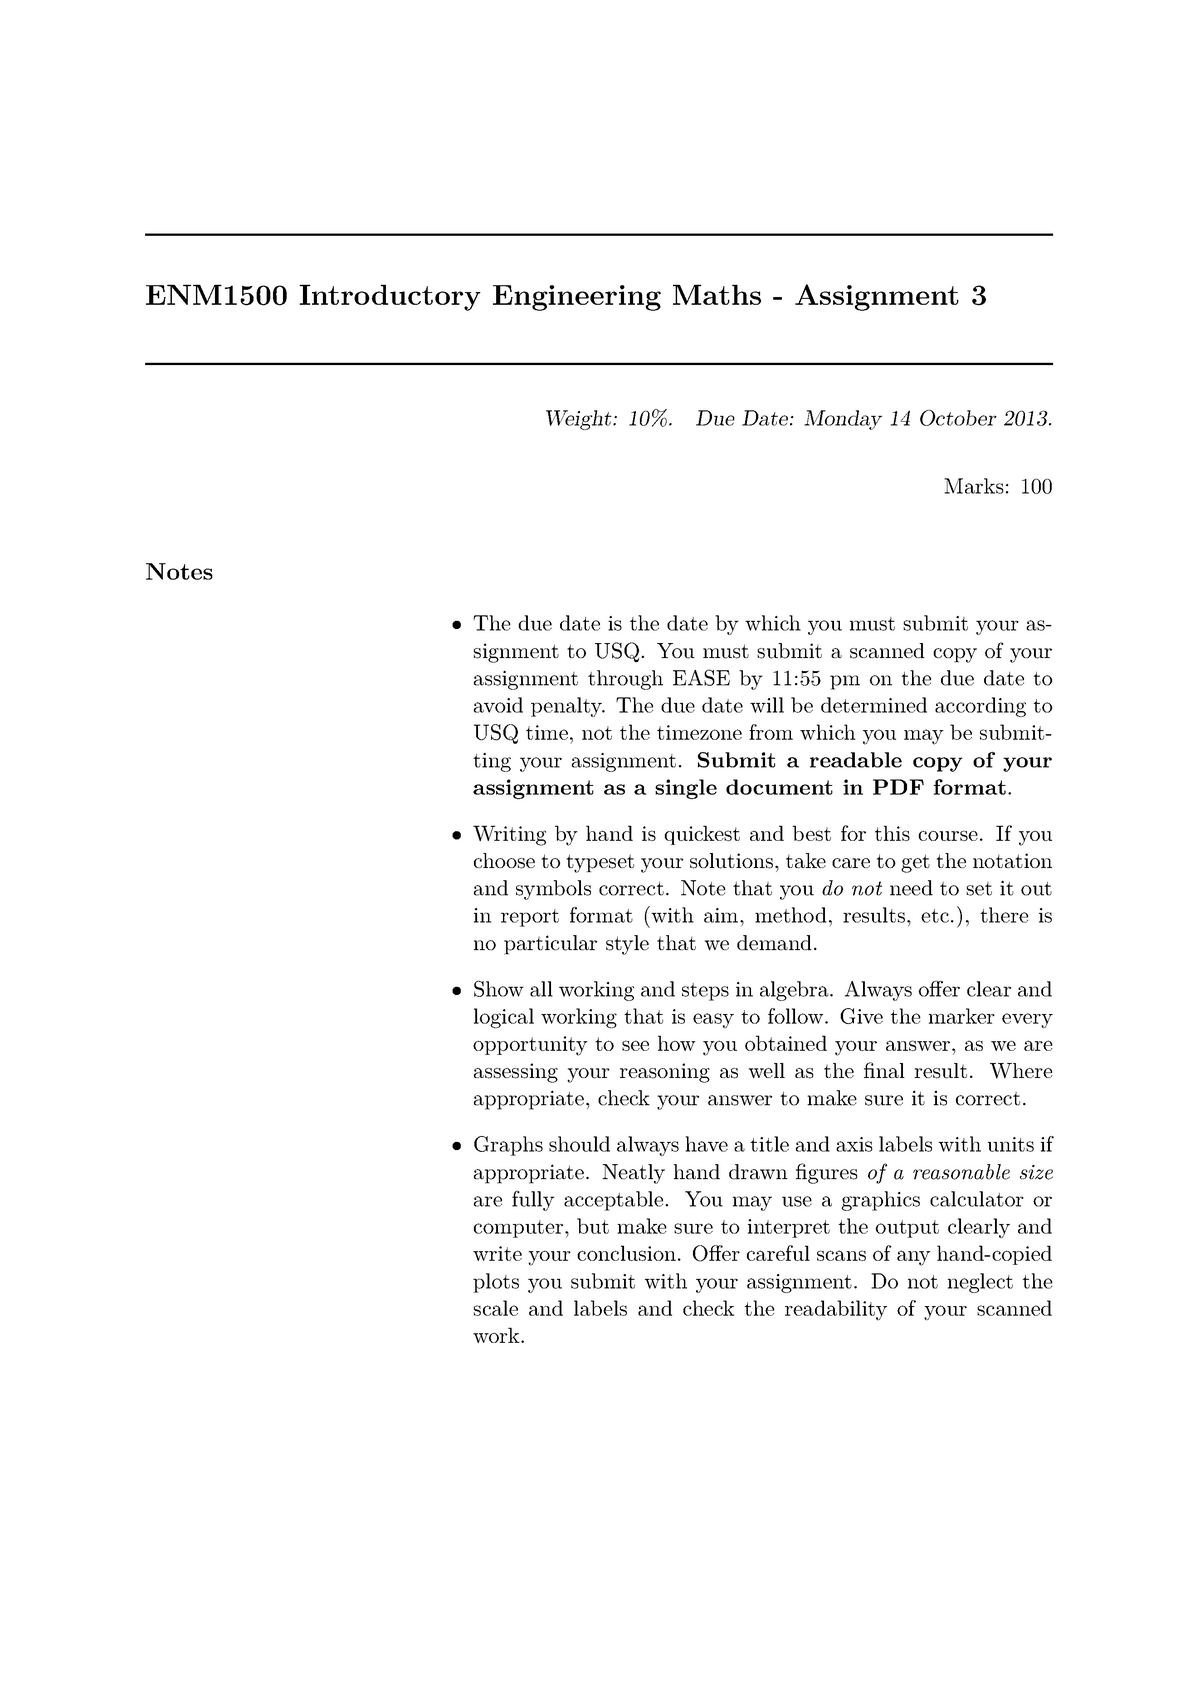 ENM1500 Assignment 3 2013 - ENM1500: Introductory